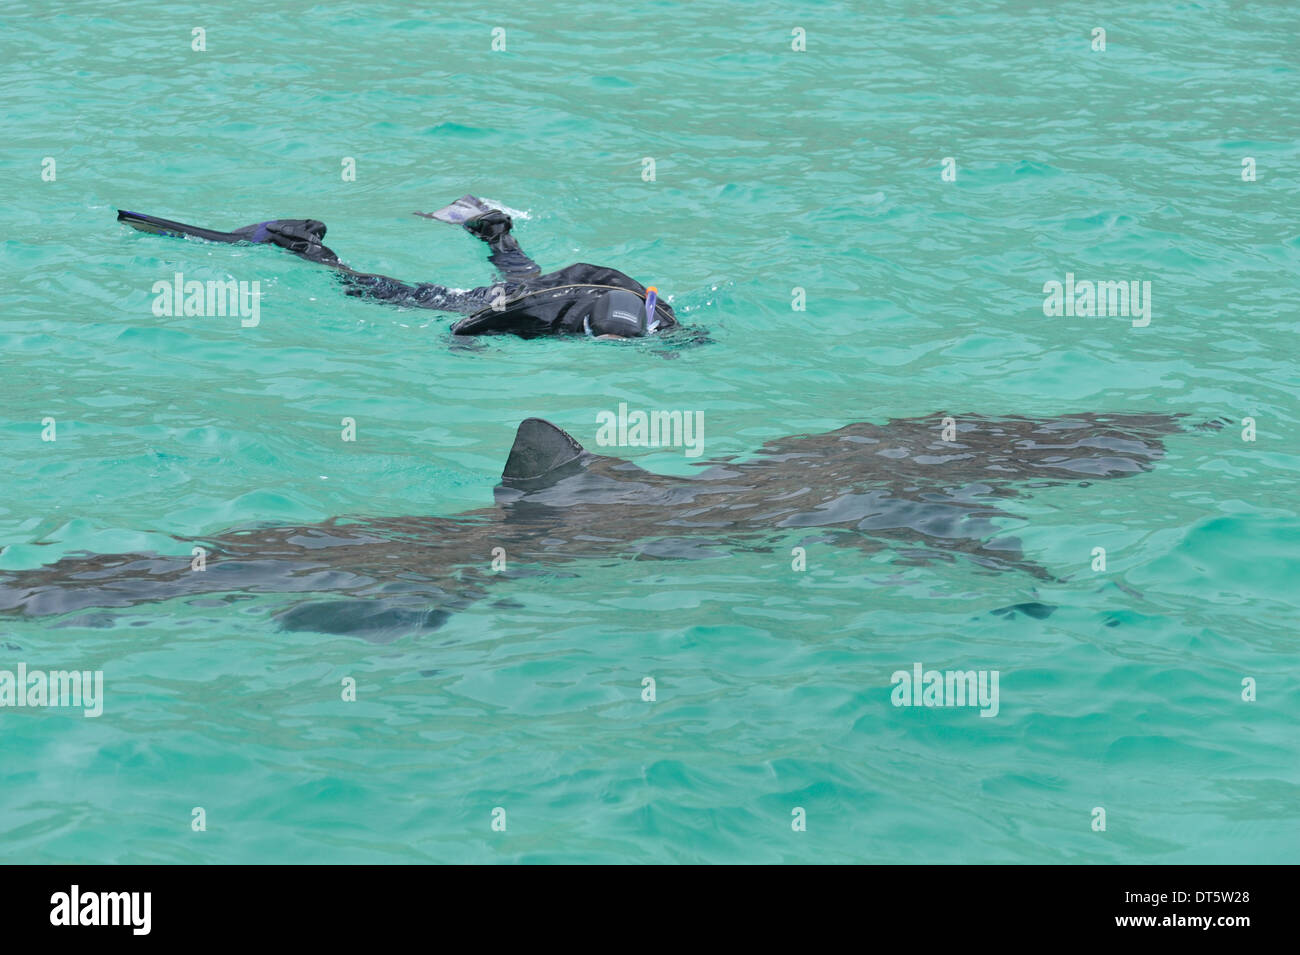 swimming with basking sharks - Stock Image